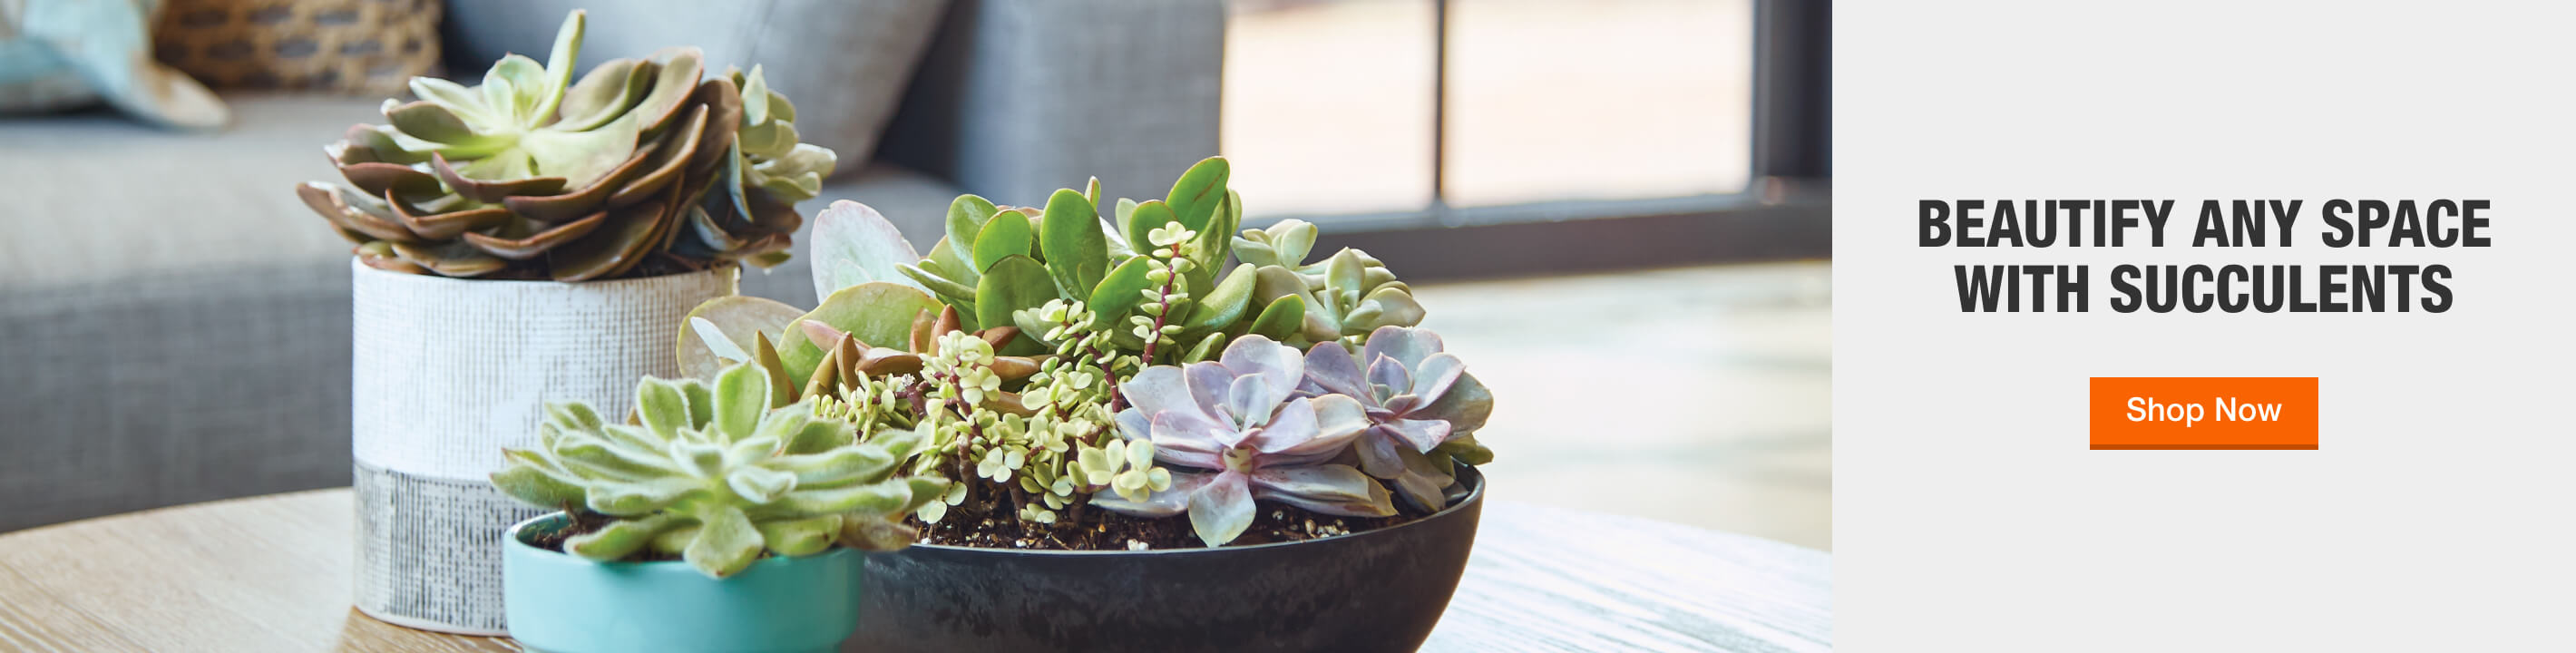 BEAUTIFY ANY SPACE­ WITH SUCCULENTS